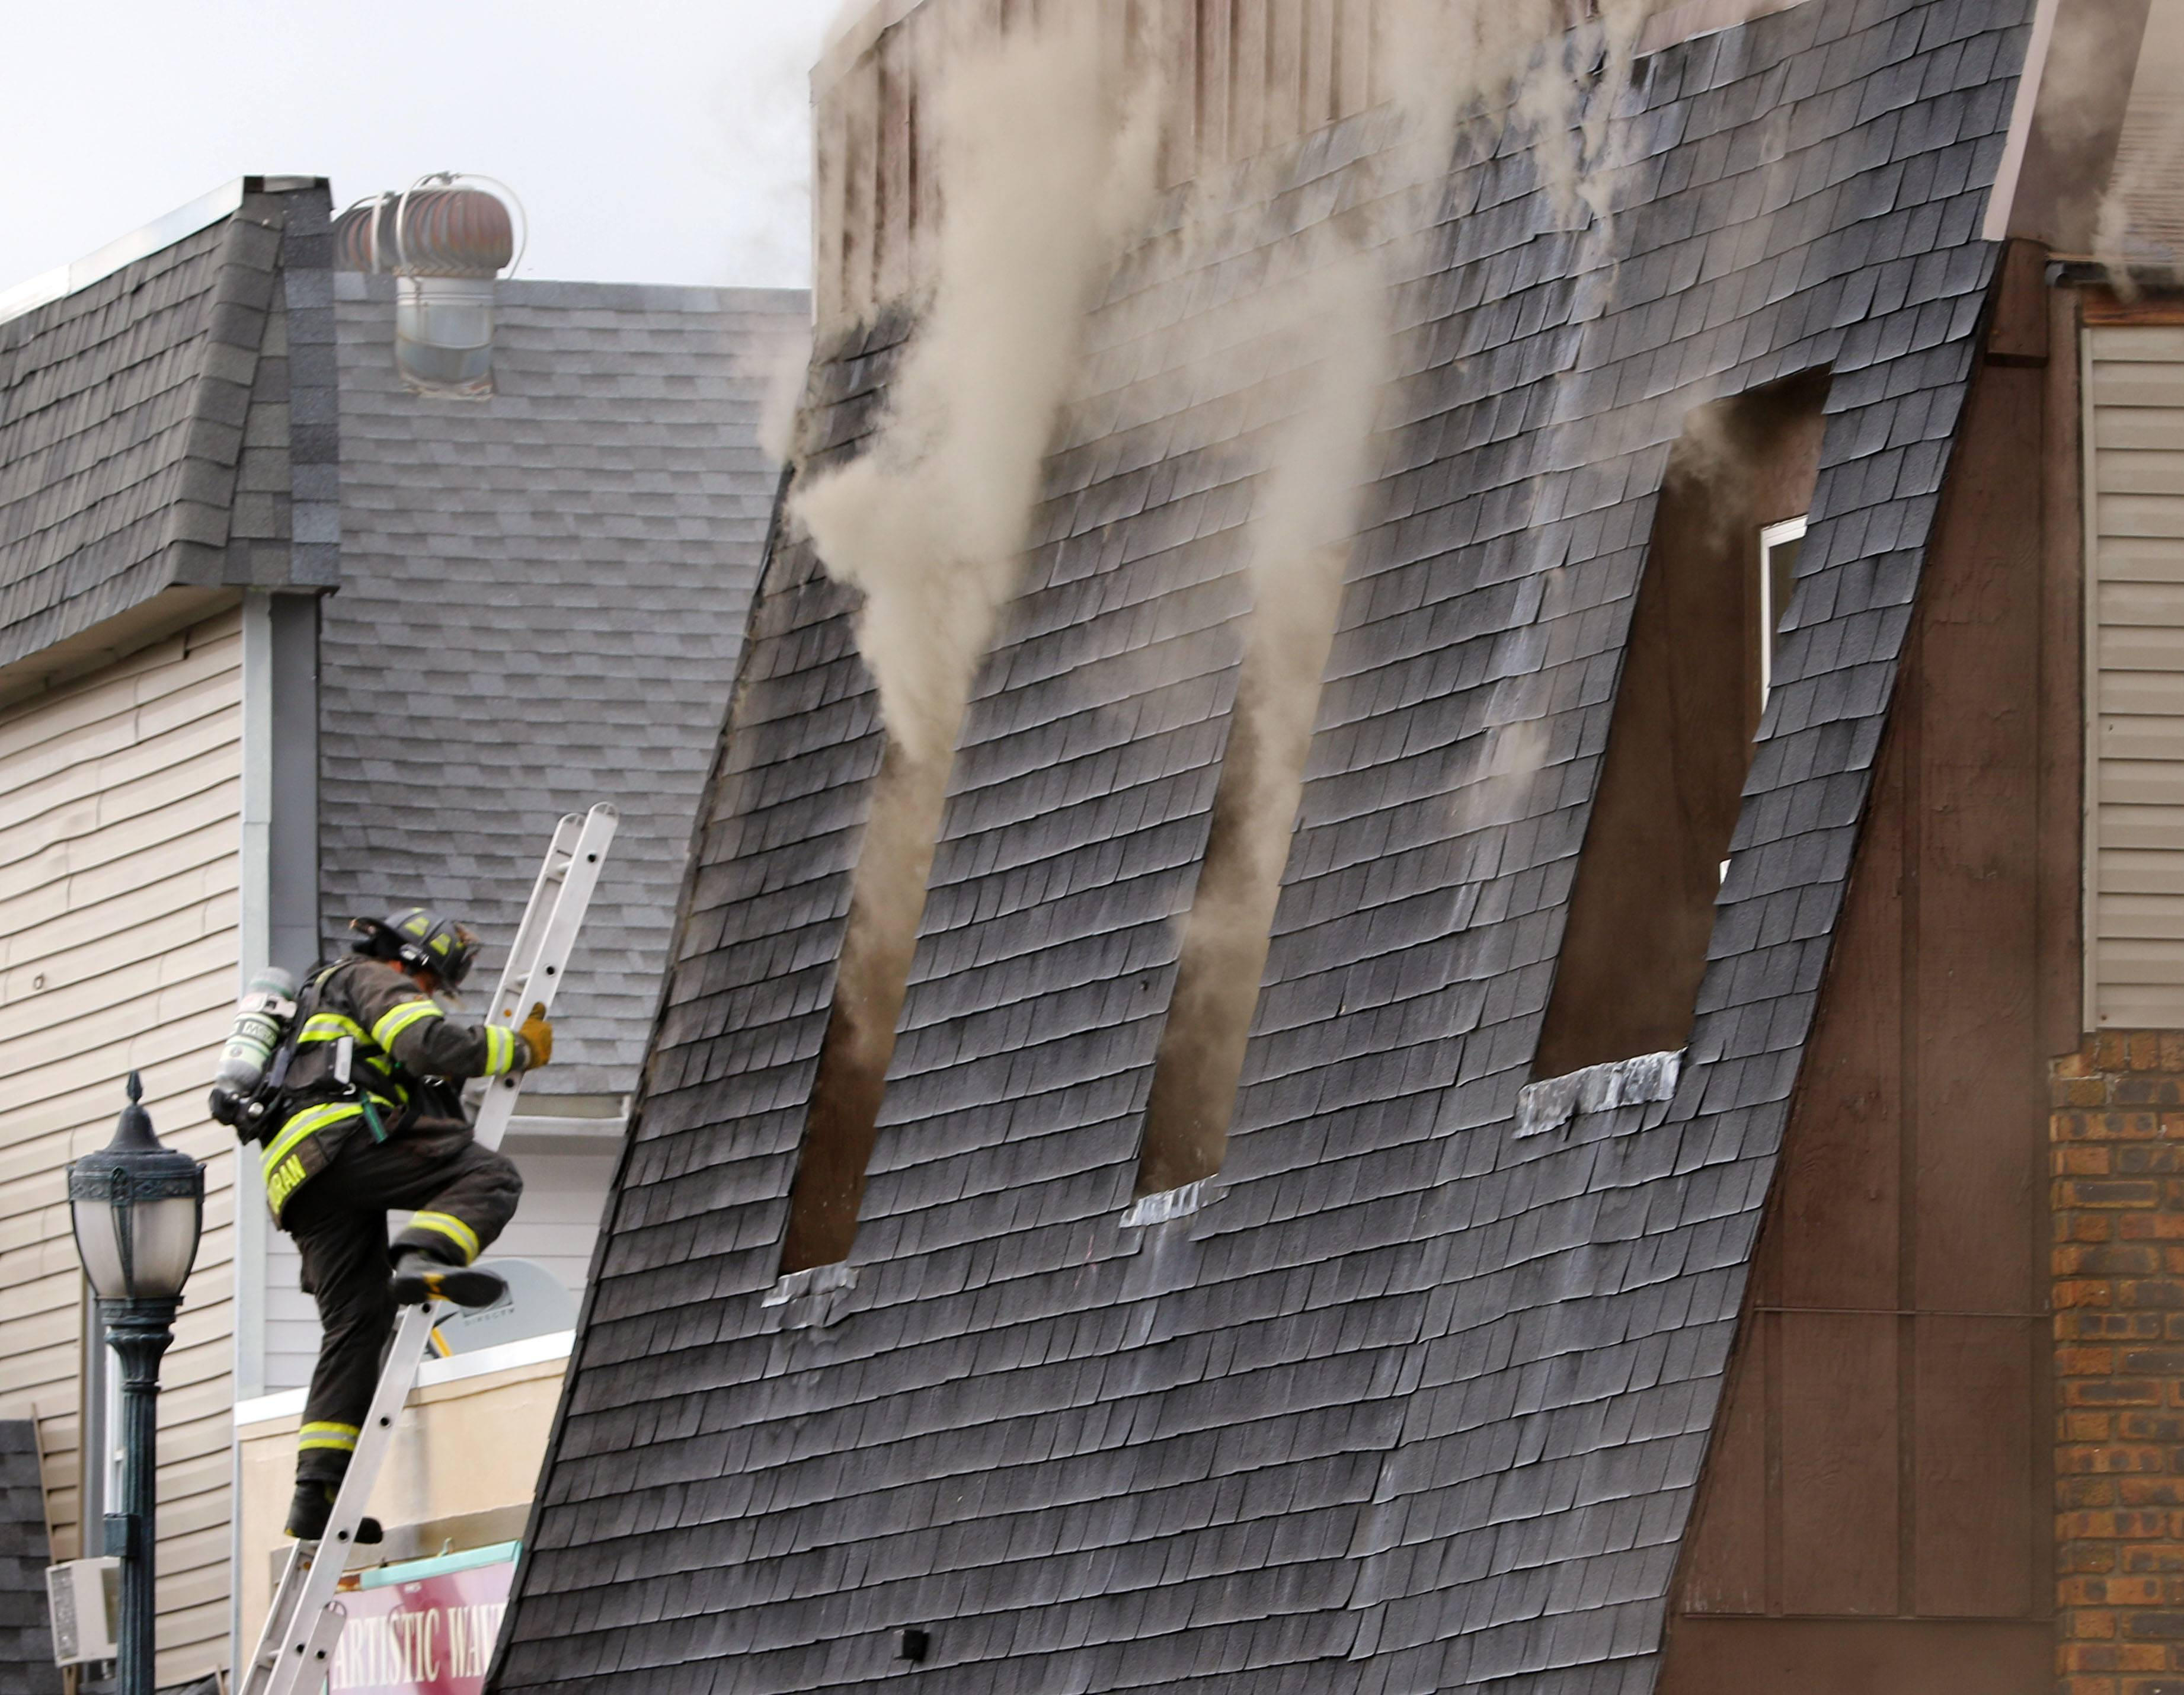 A firefighter climbs to the roof during a multiple alarm fire Friday at an apartment building in downtown Round Lake. A 33-year-old man killed in the fire was identified Monday.